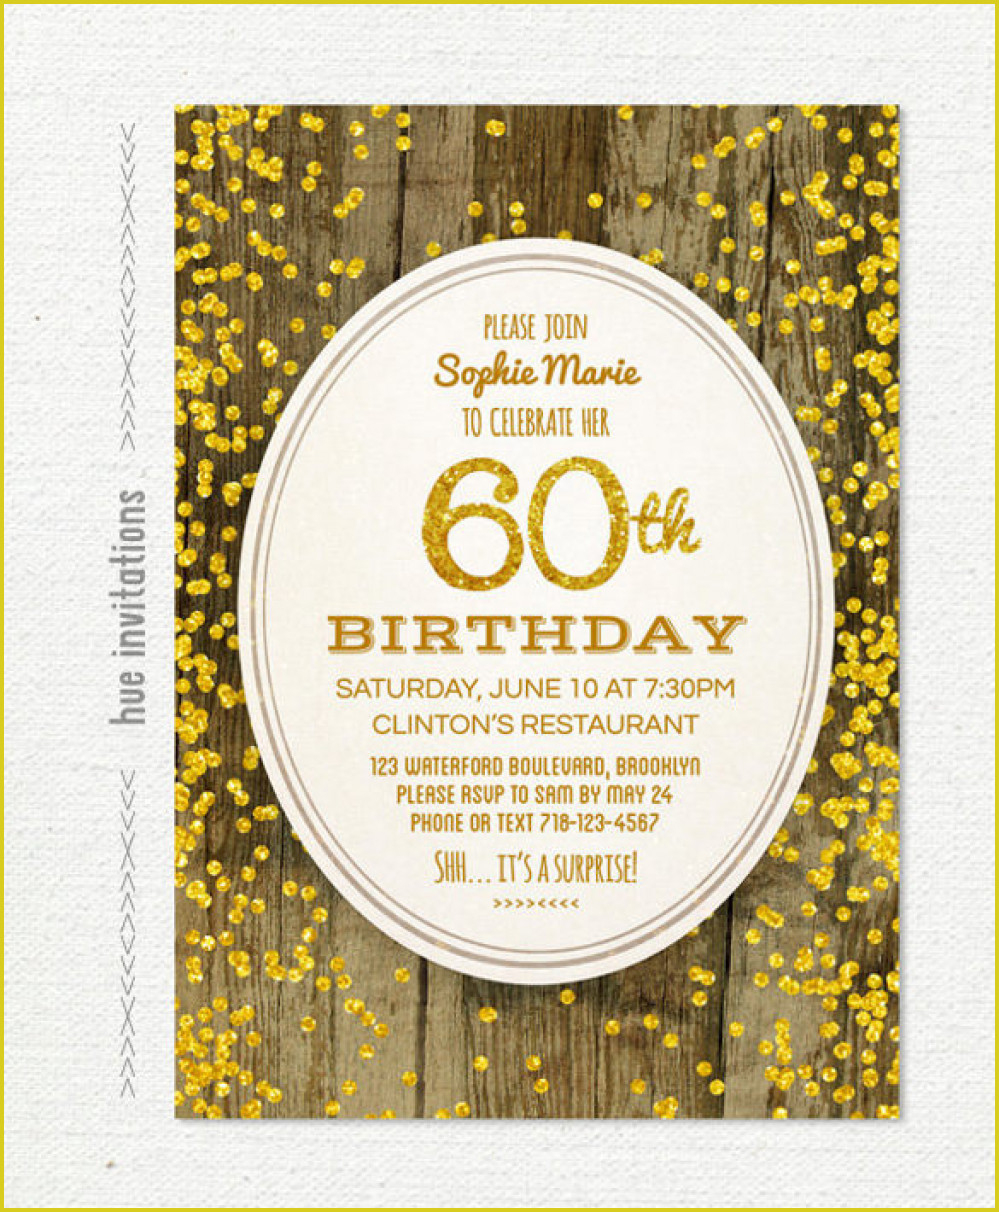 Simple 60Th Birthday Invitation To Create Your Own Free Printable - Free Printable Surprise 60Th Birthday Invitations